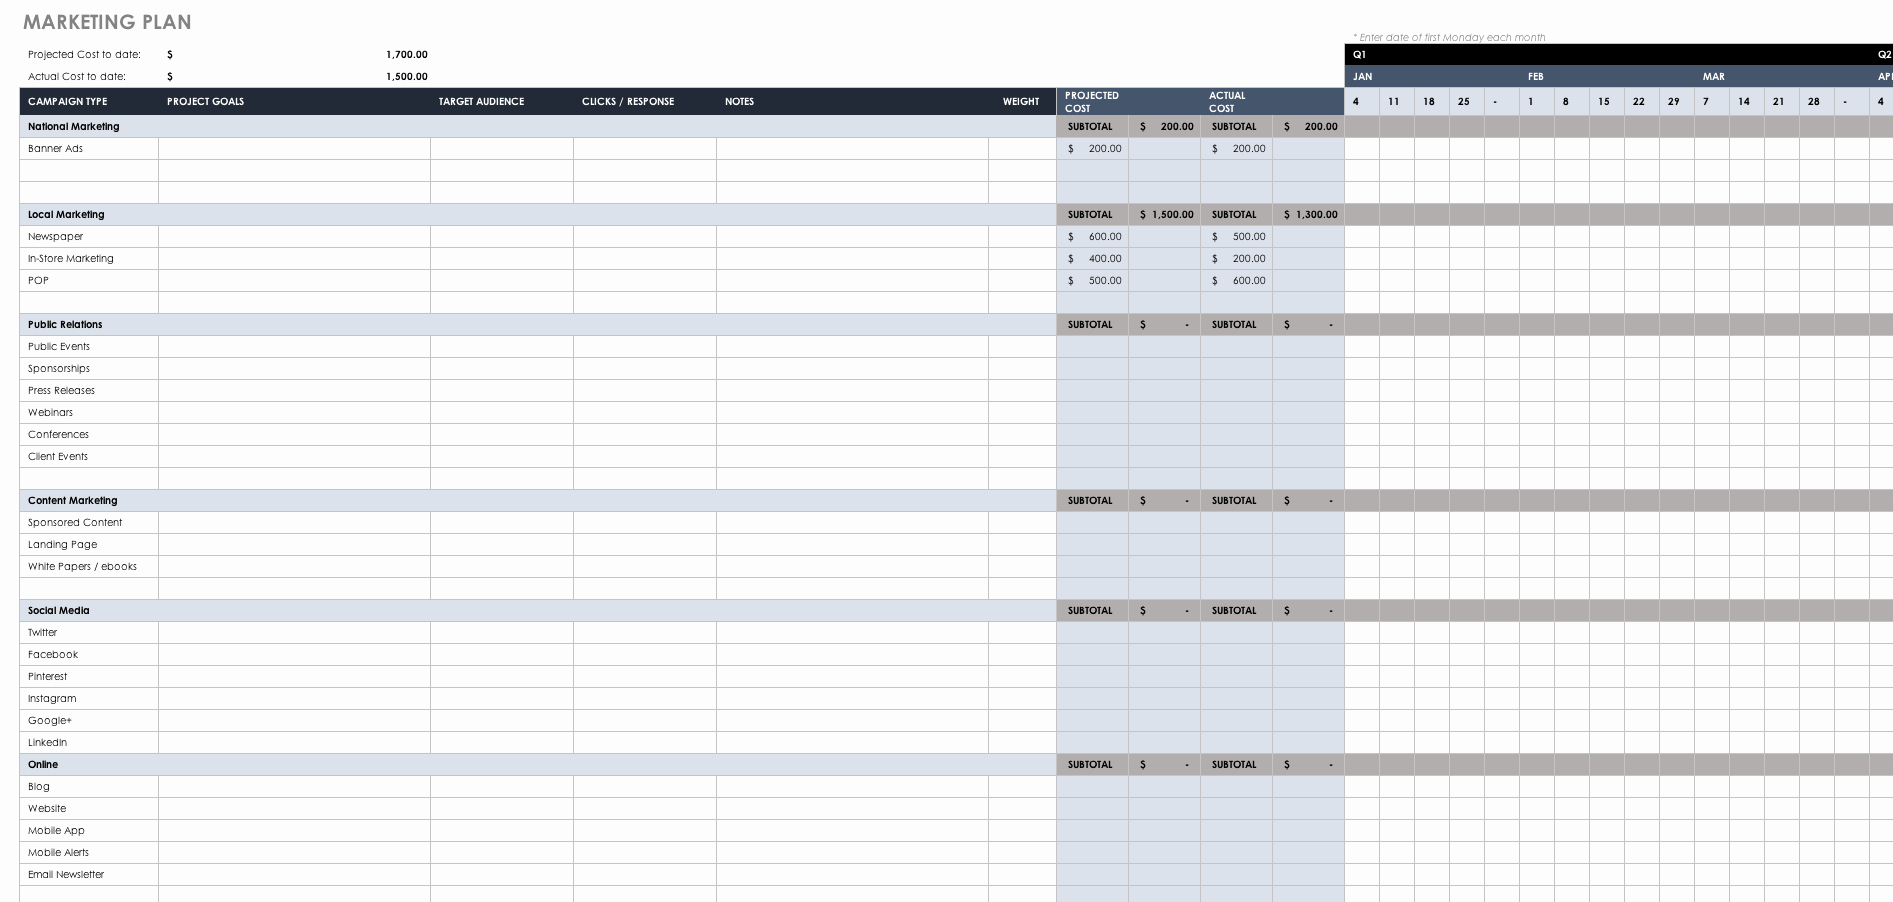 1 Page Marketing Plan Template New Free Marketing Plan Templates for Excel